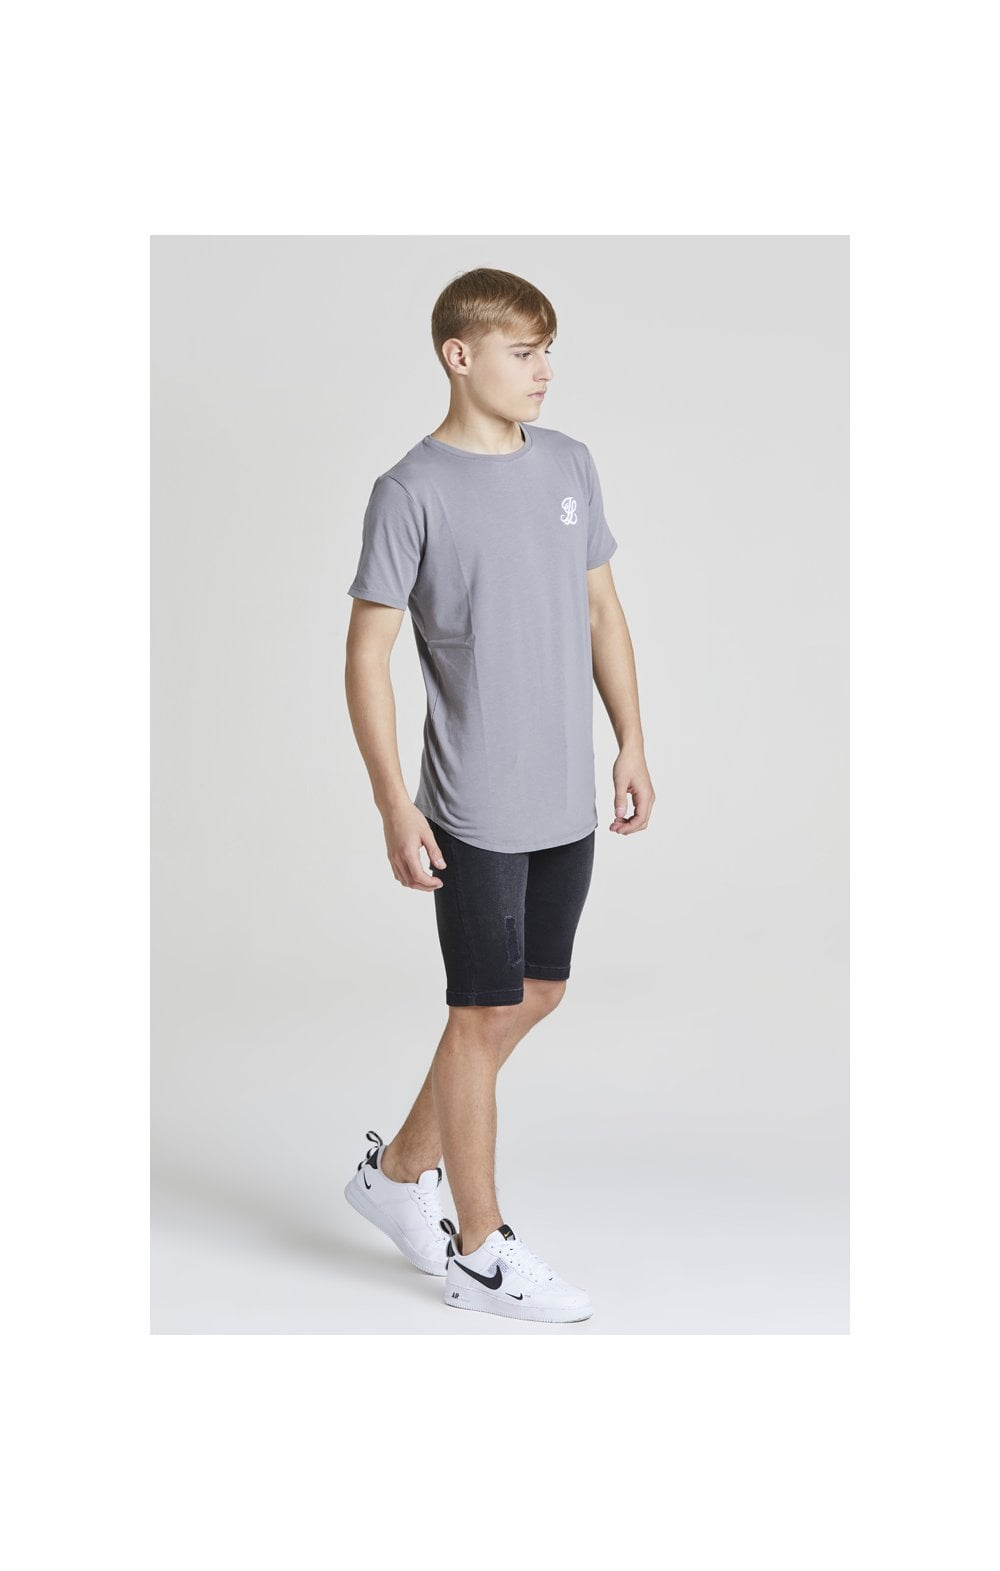 Illusive London S/S Core Tee - Grey (3)